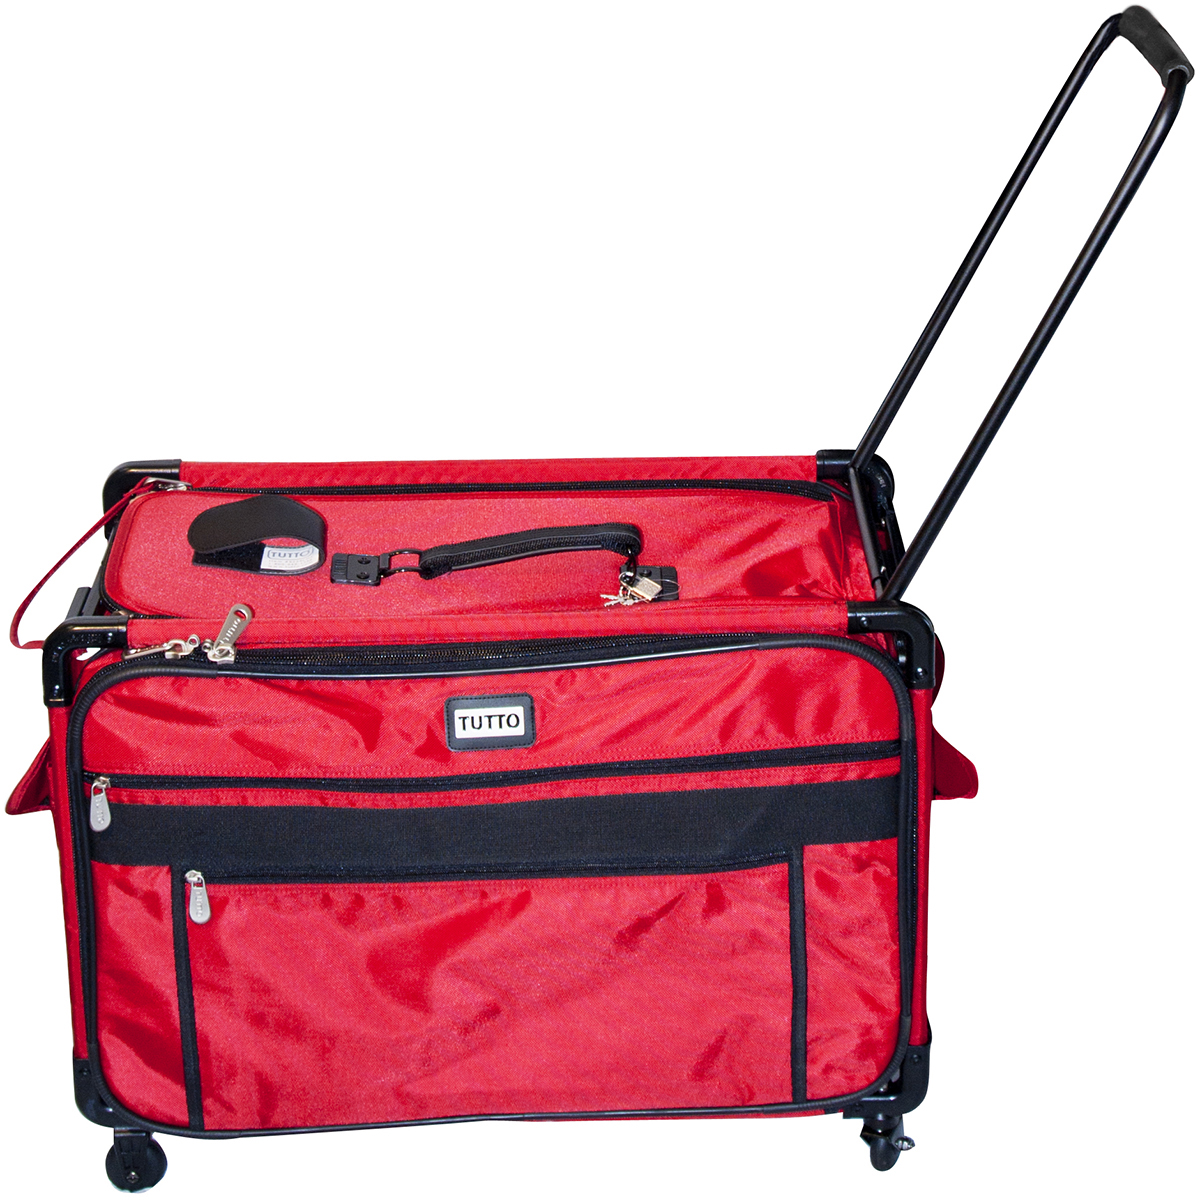 TUTTO Machine On Wheels Case, Red